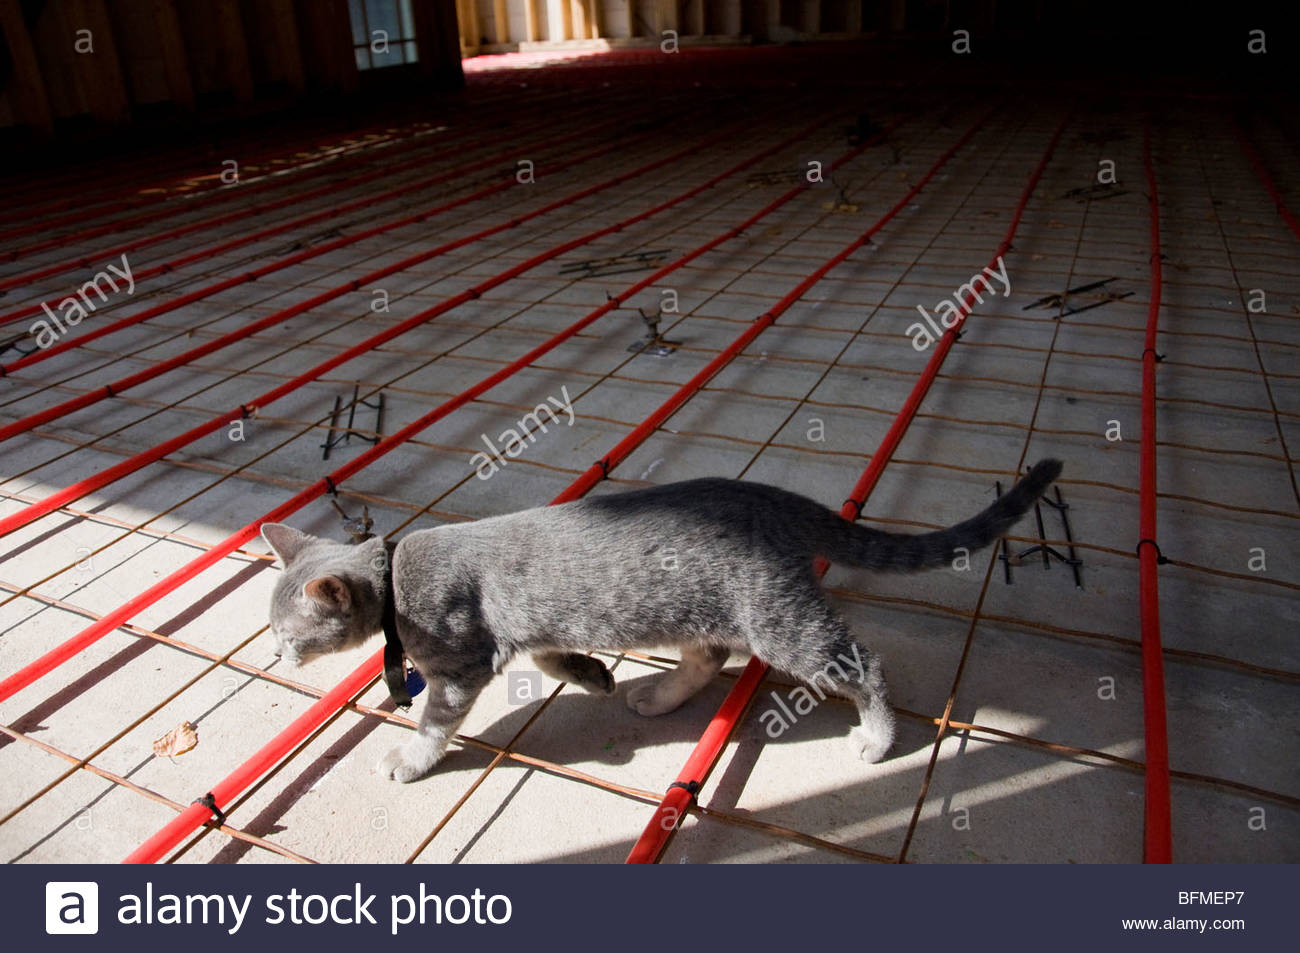 Garage Heater For Dogs Domestic Garages Stock Photos Domestic Garages Stock Images Alamy